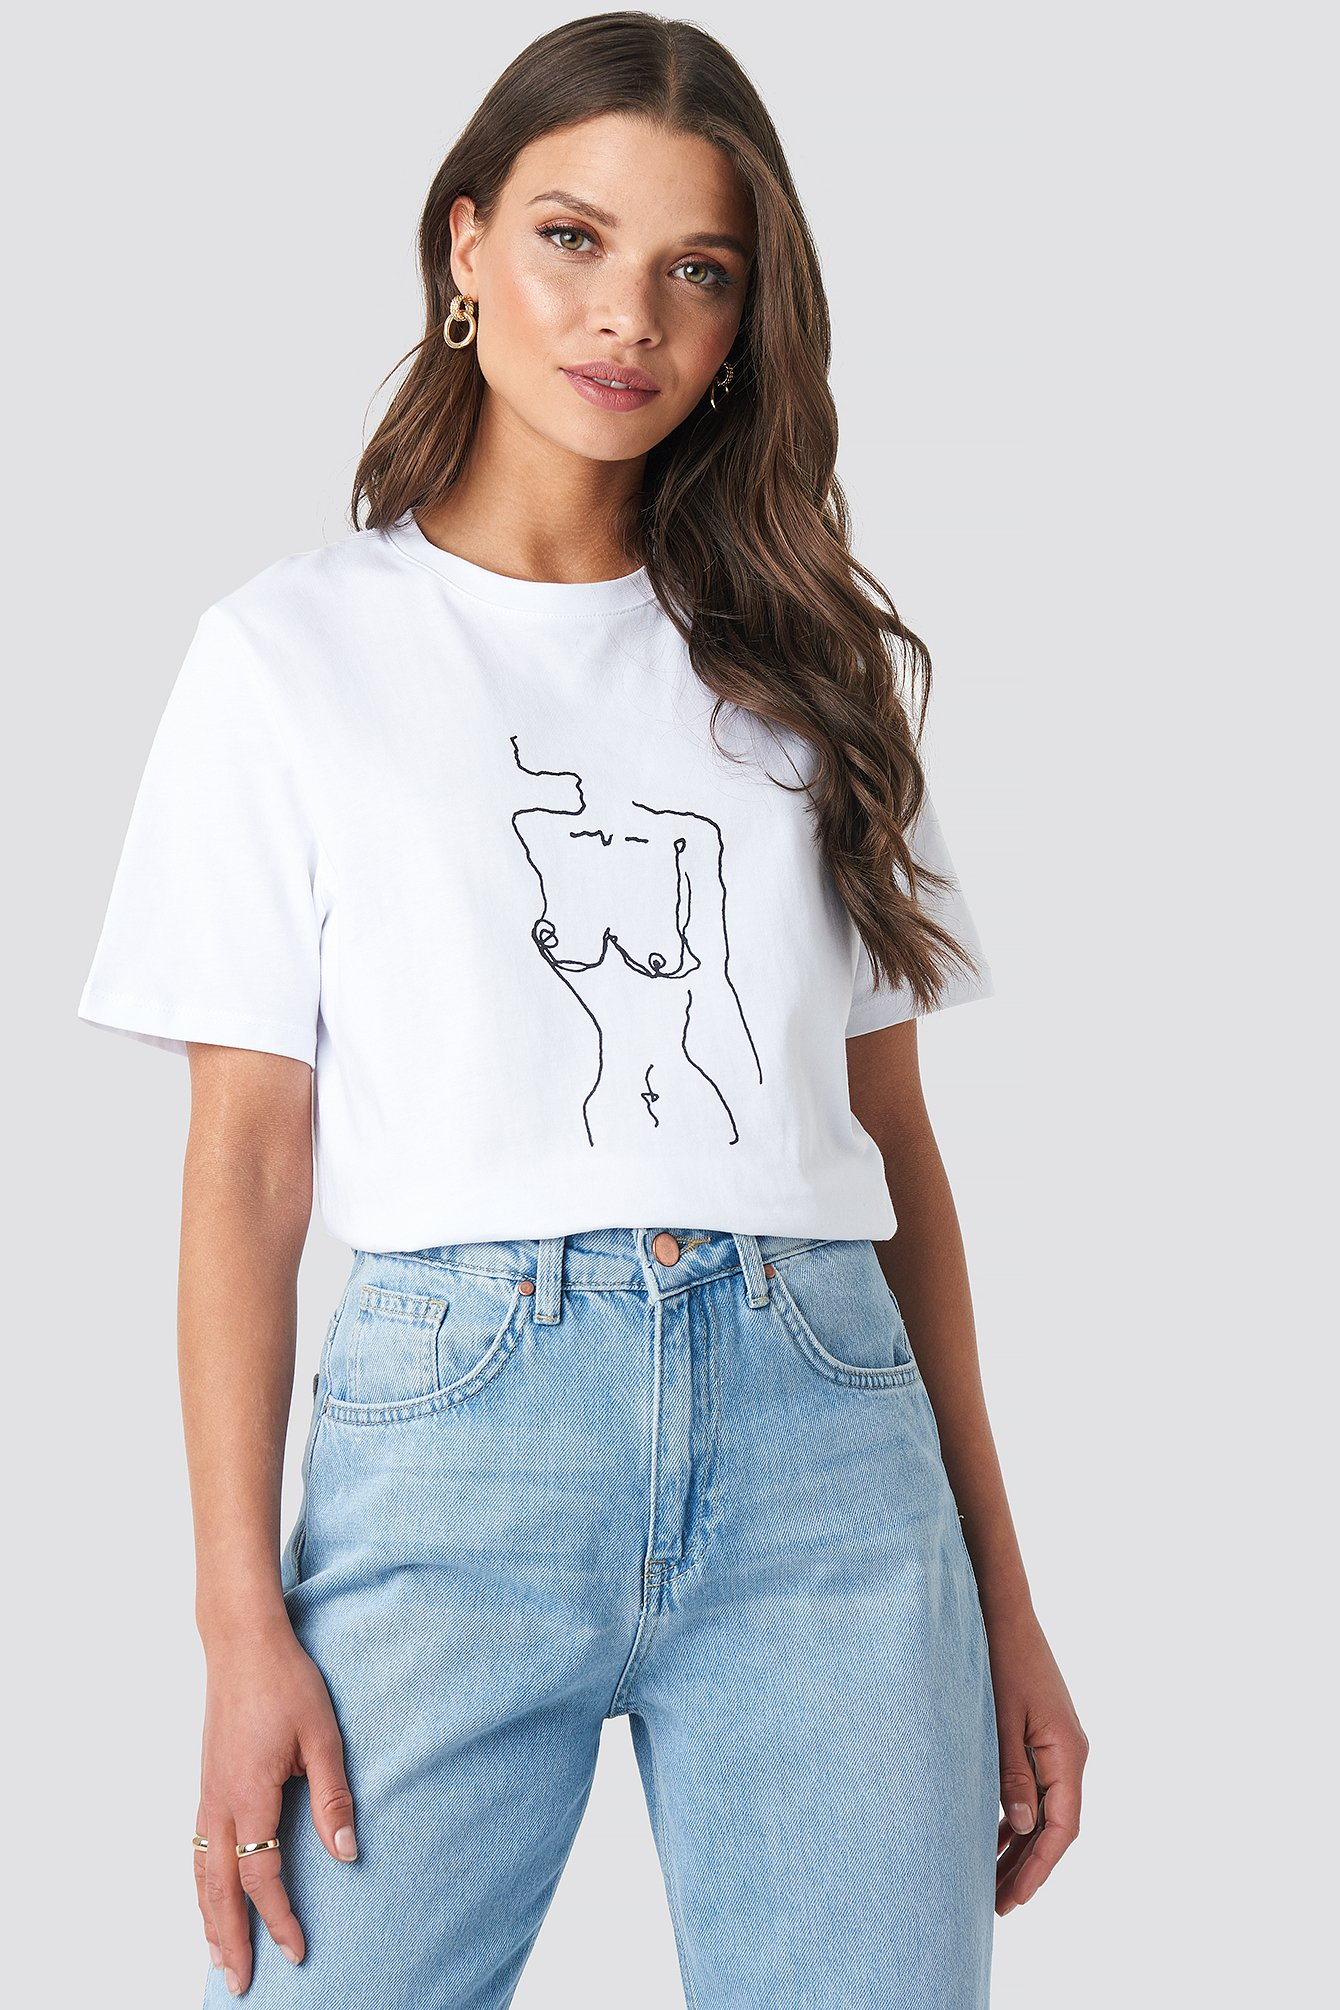 emilie briting x na-kd -  Lady Print T-shirt - White